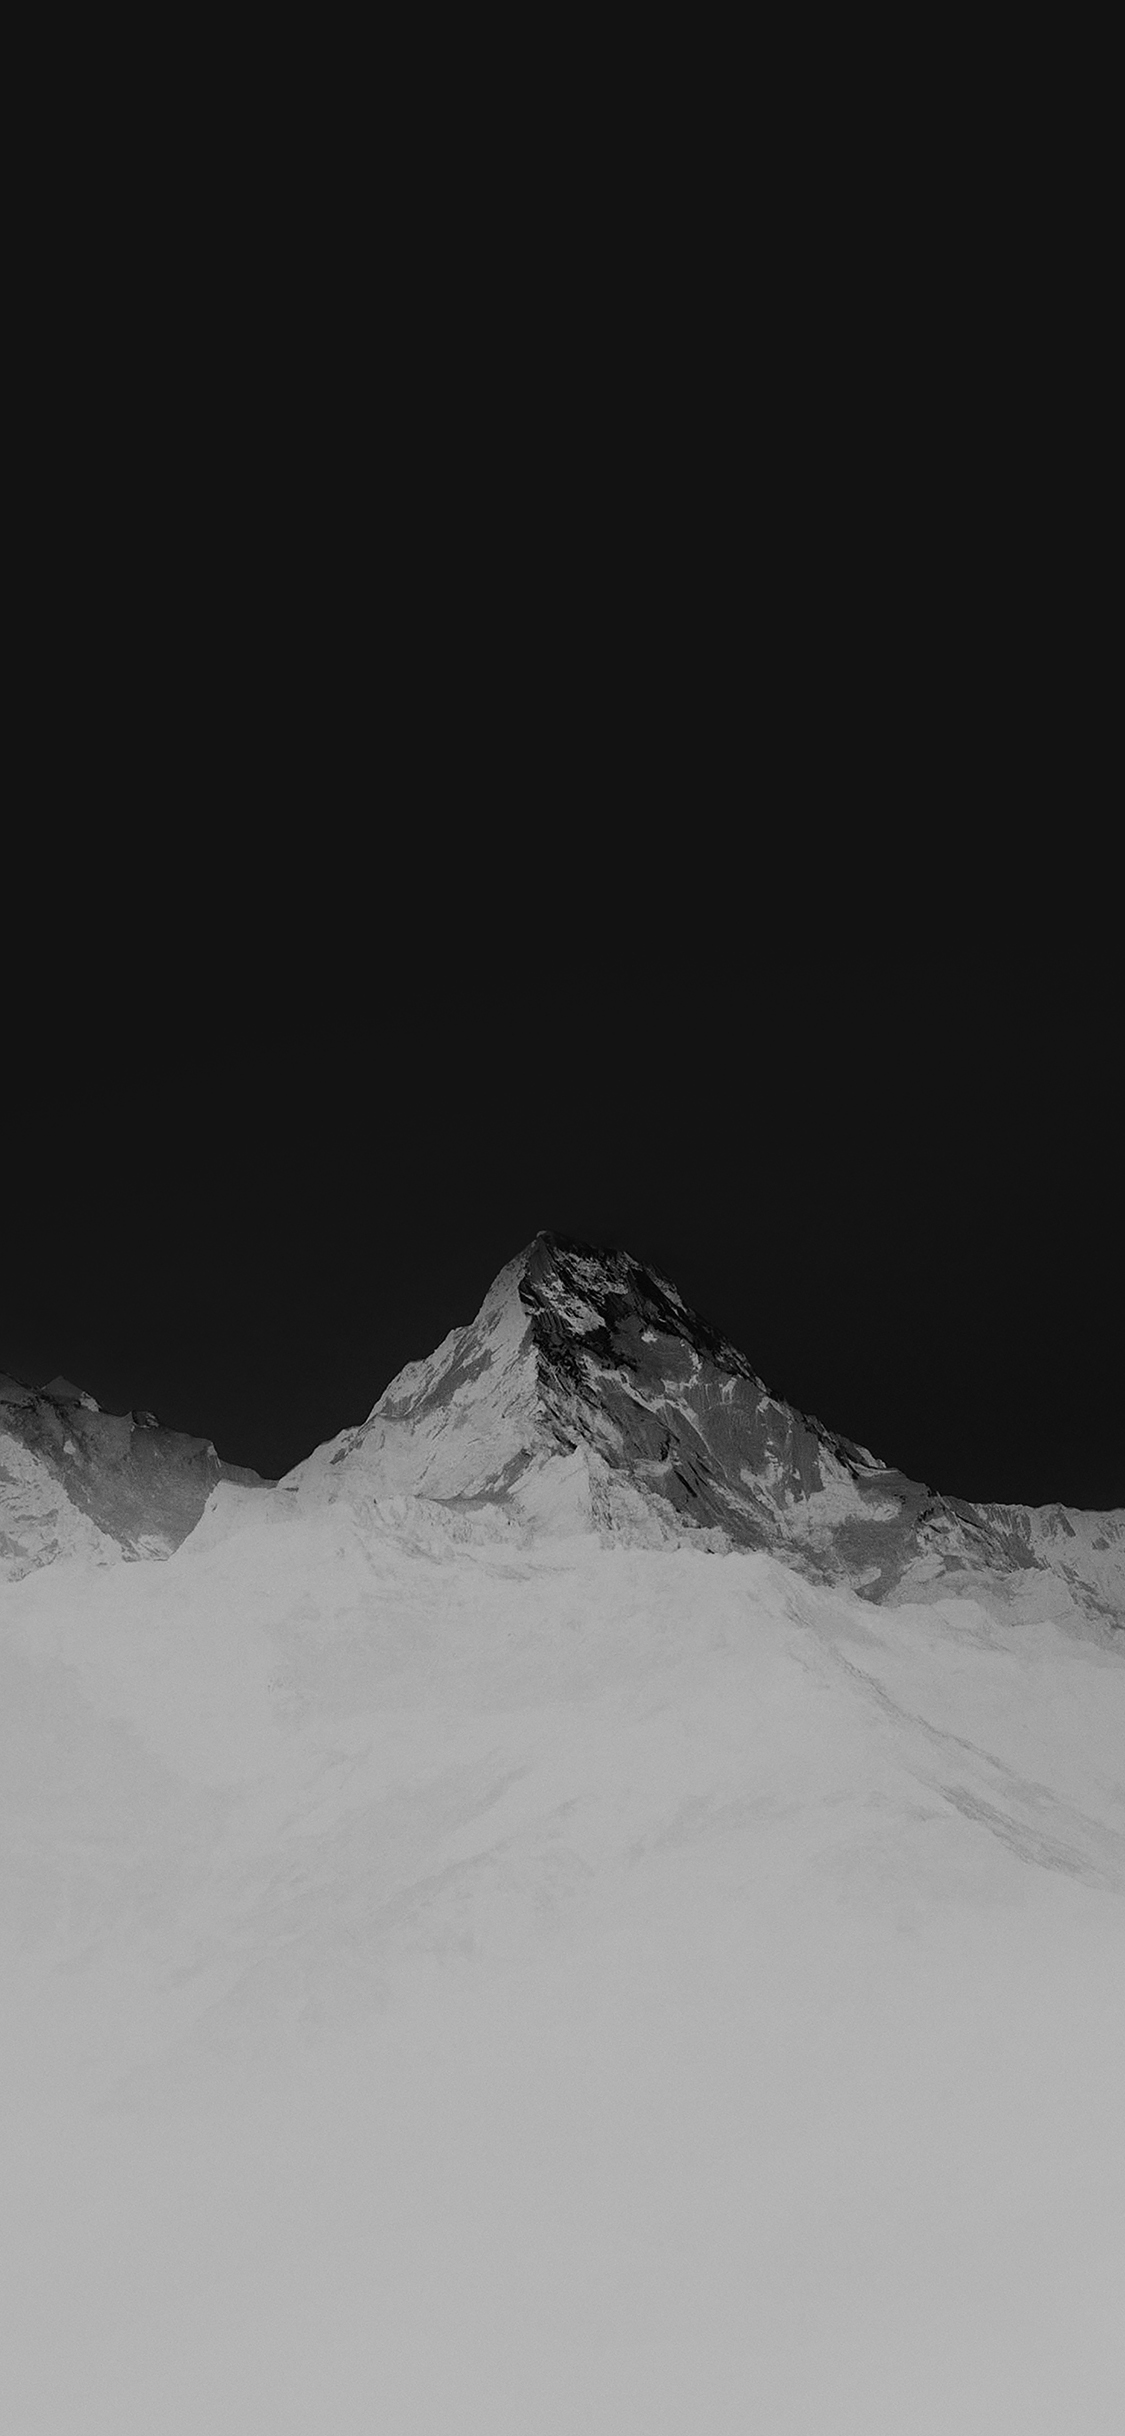 iPhoneXpapers.com-Apple-iPhone-wallpaper-ml67-mountain-bw-white-high-sky-nature-rocky